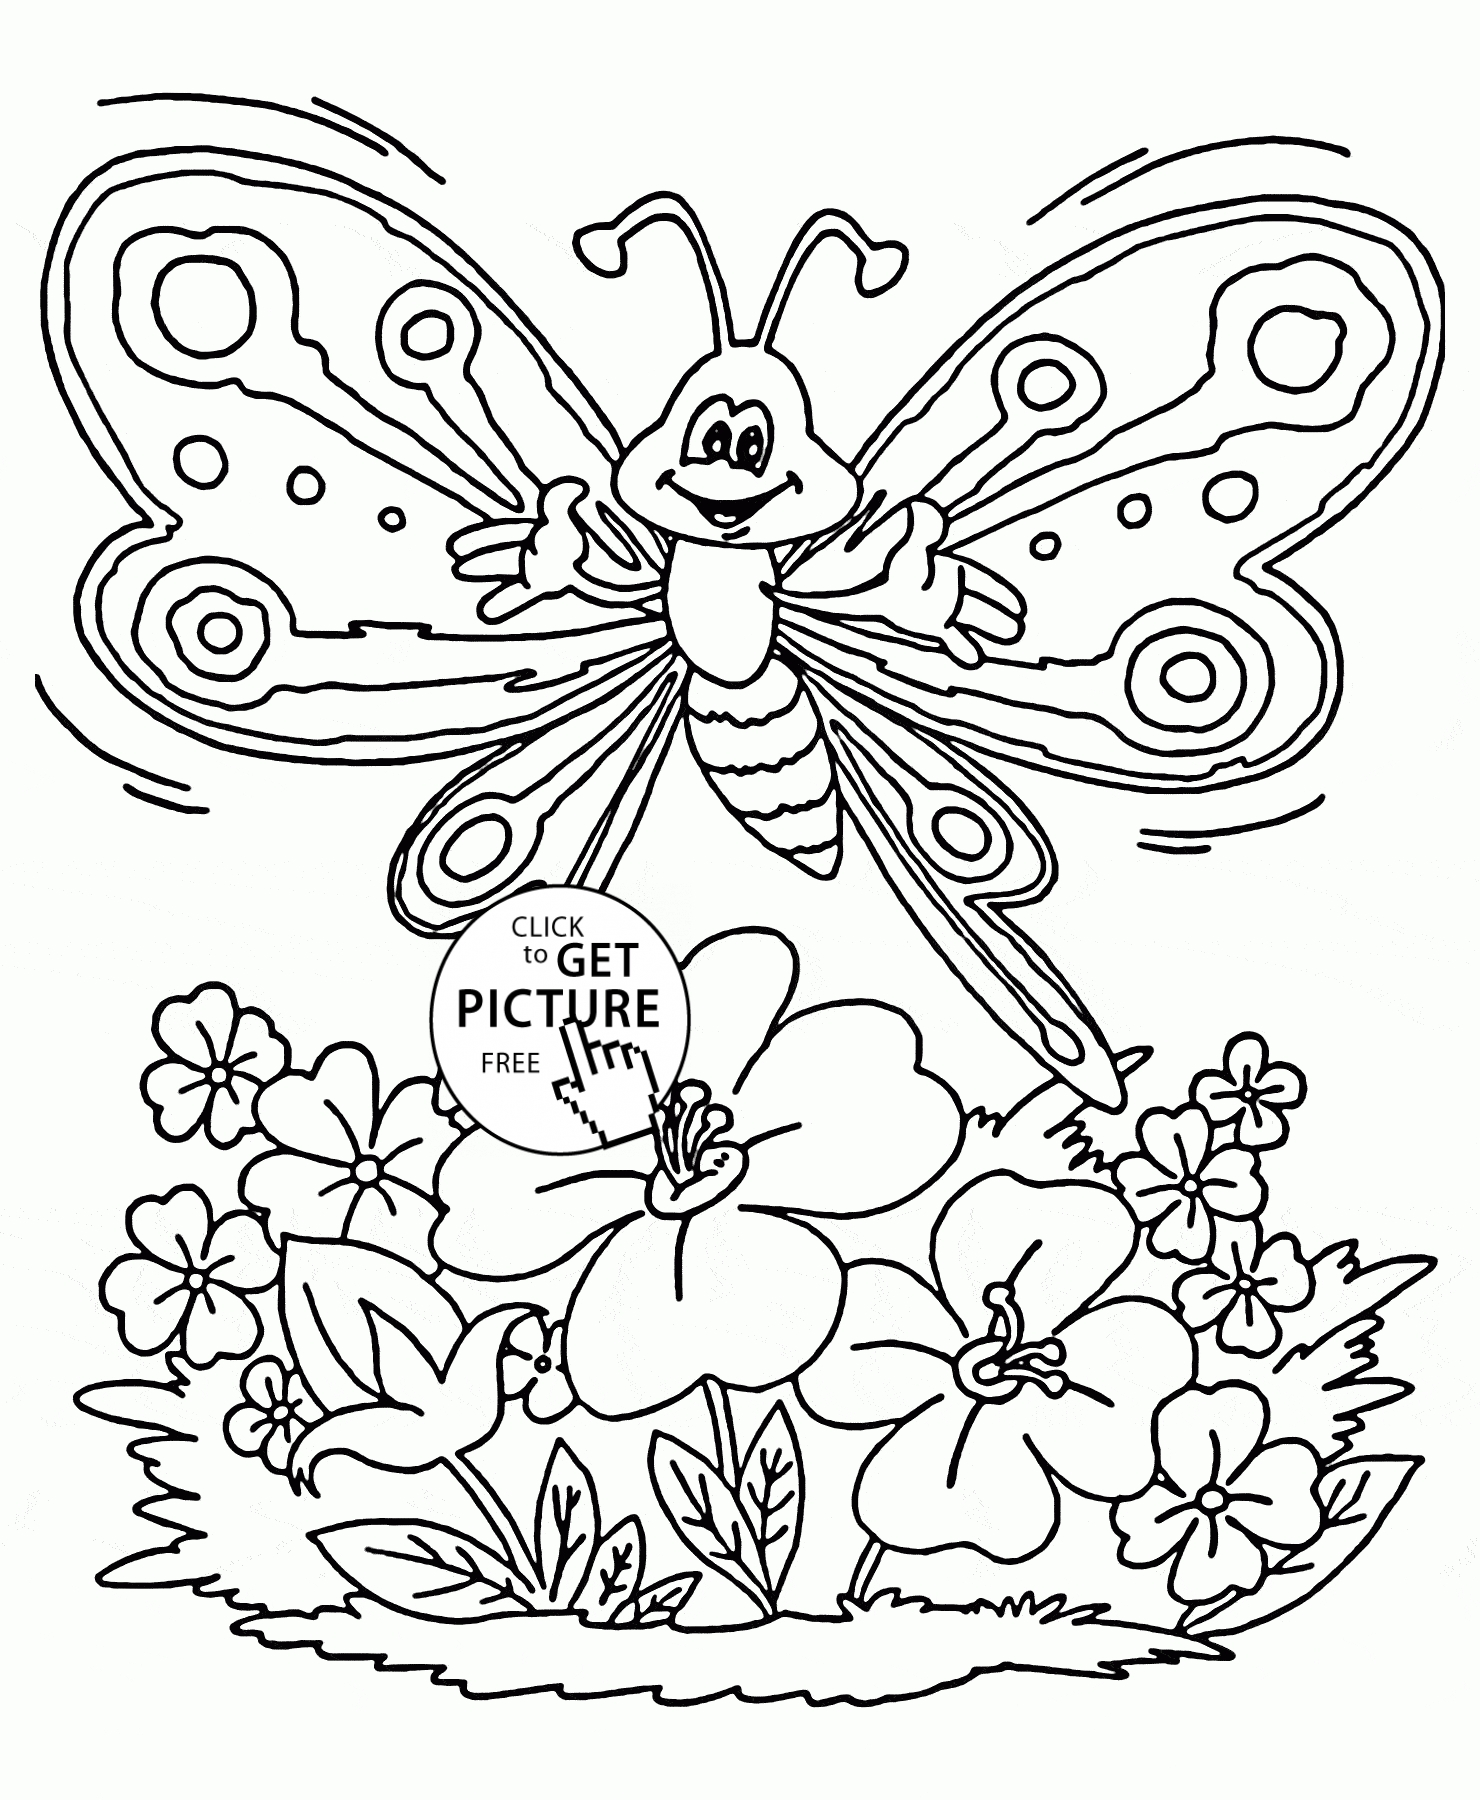 20 Spring Coloring Pages for Preschoolers Collections | FREE ...